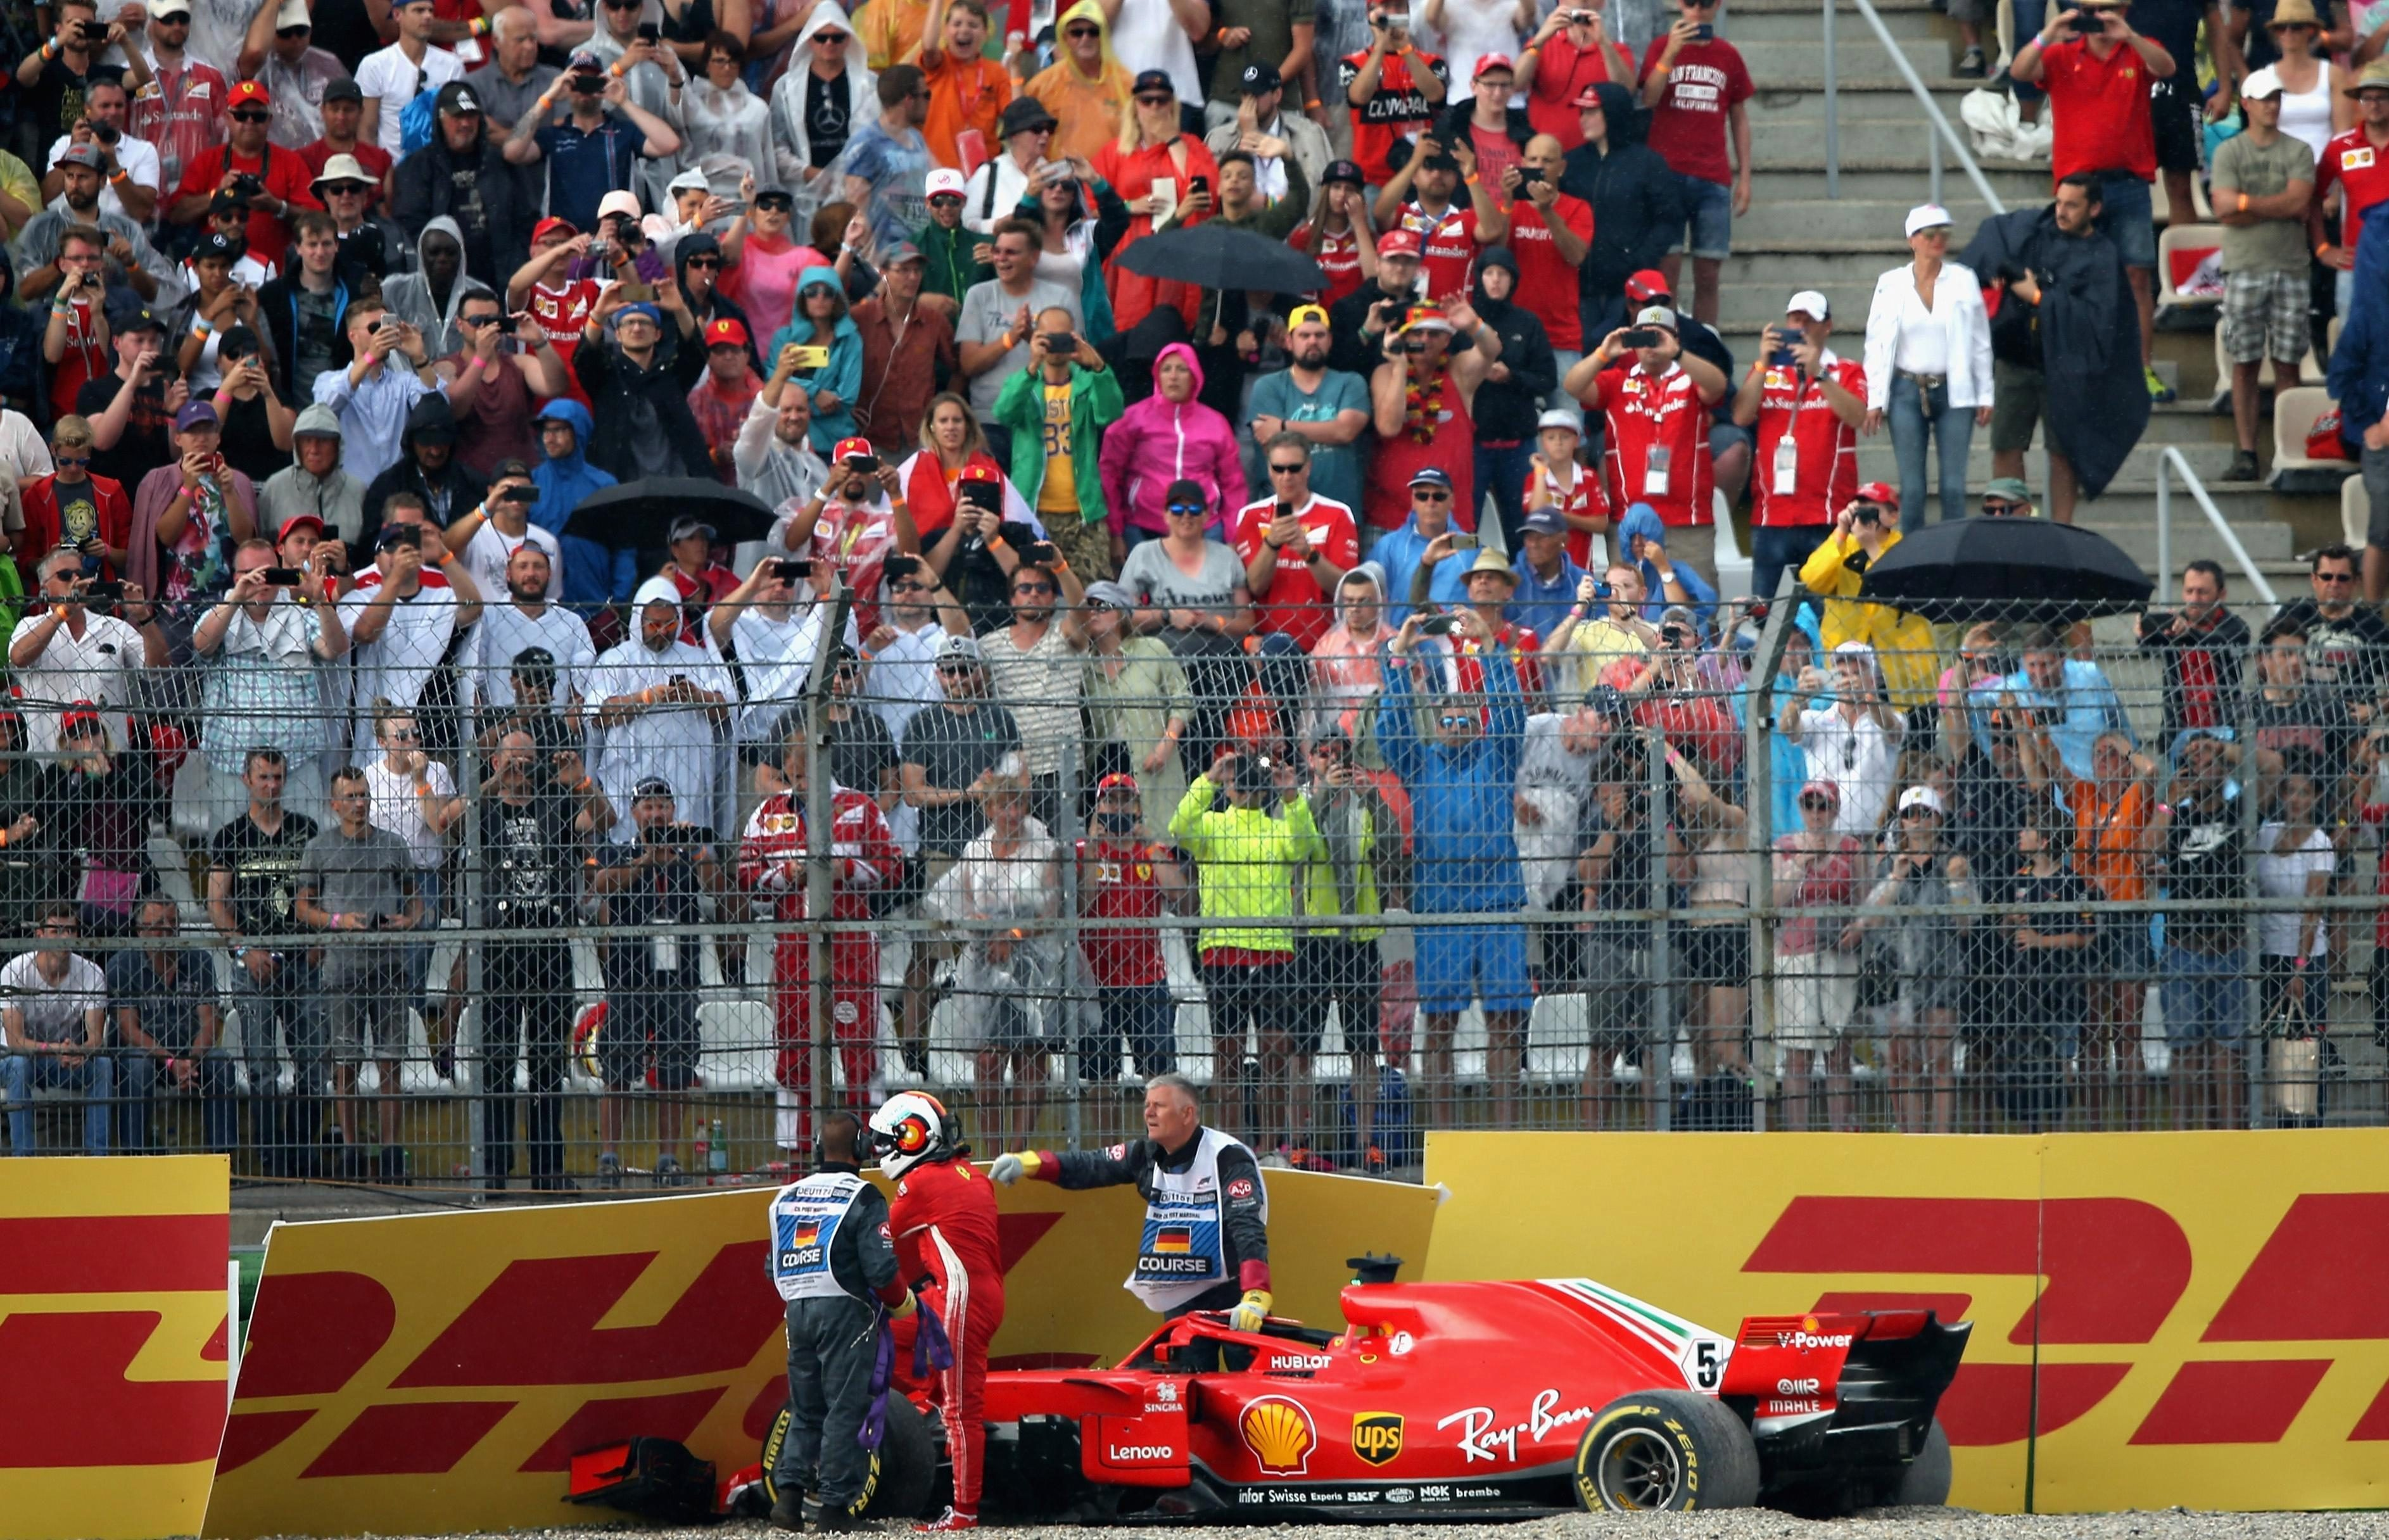 Hamilton's main title rival Vettel crashed out with 15 laps to go